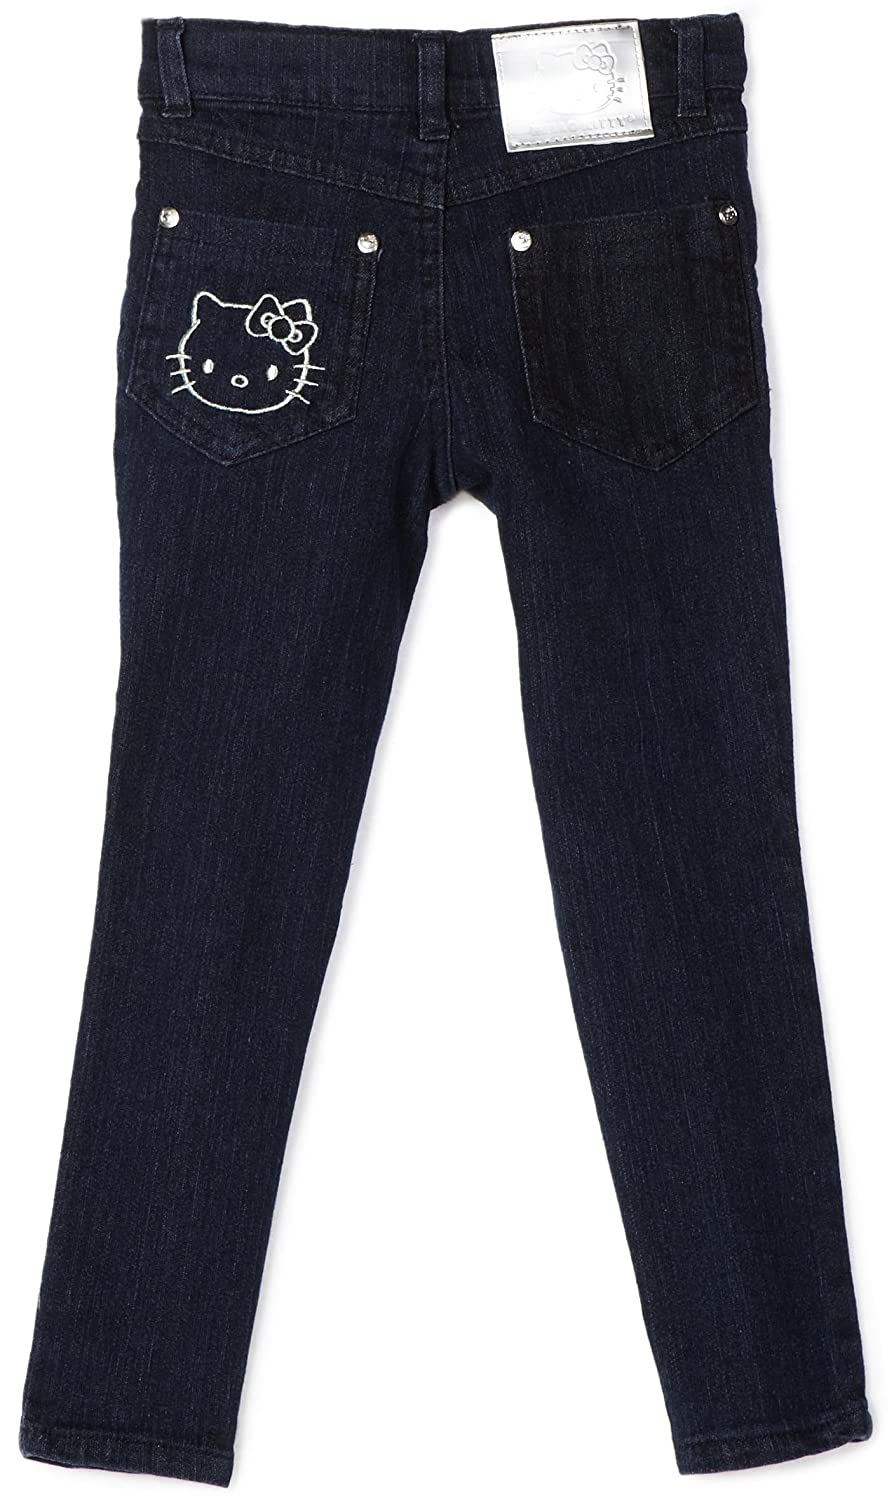 7e38c1617 Amazon.com: Hello Kitty Girls' Skinny Jean with Patch Pocket: Clothing